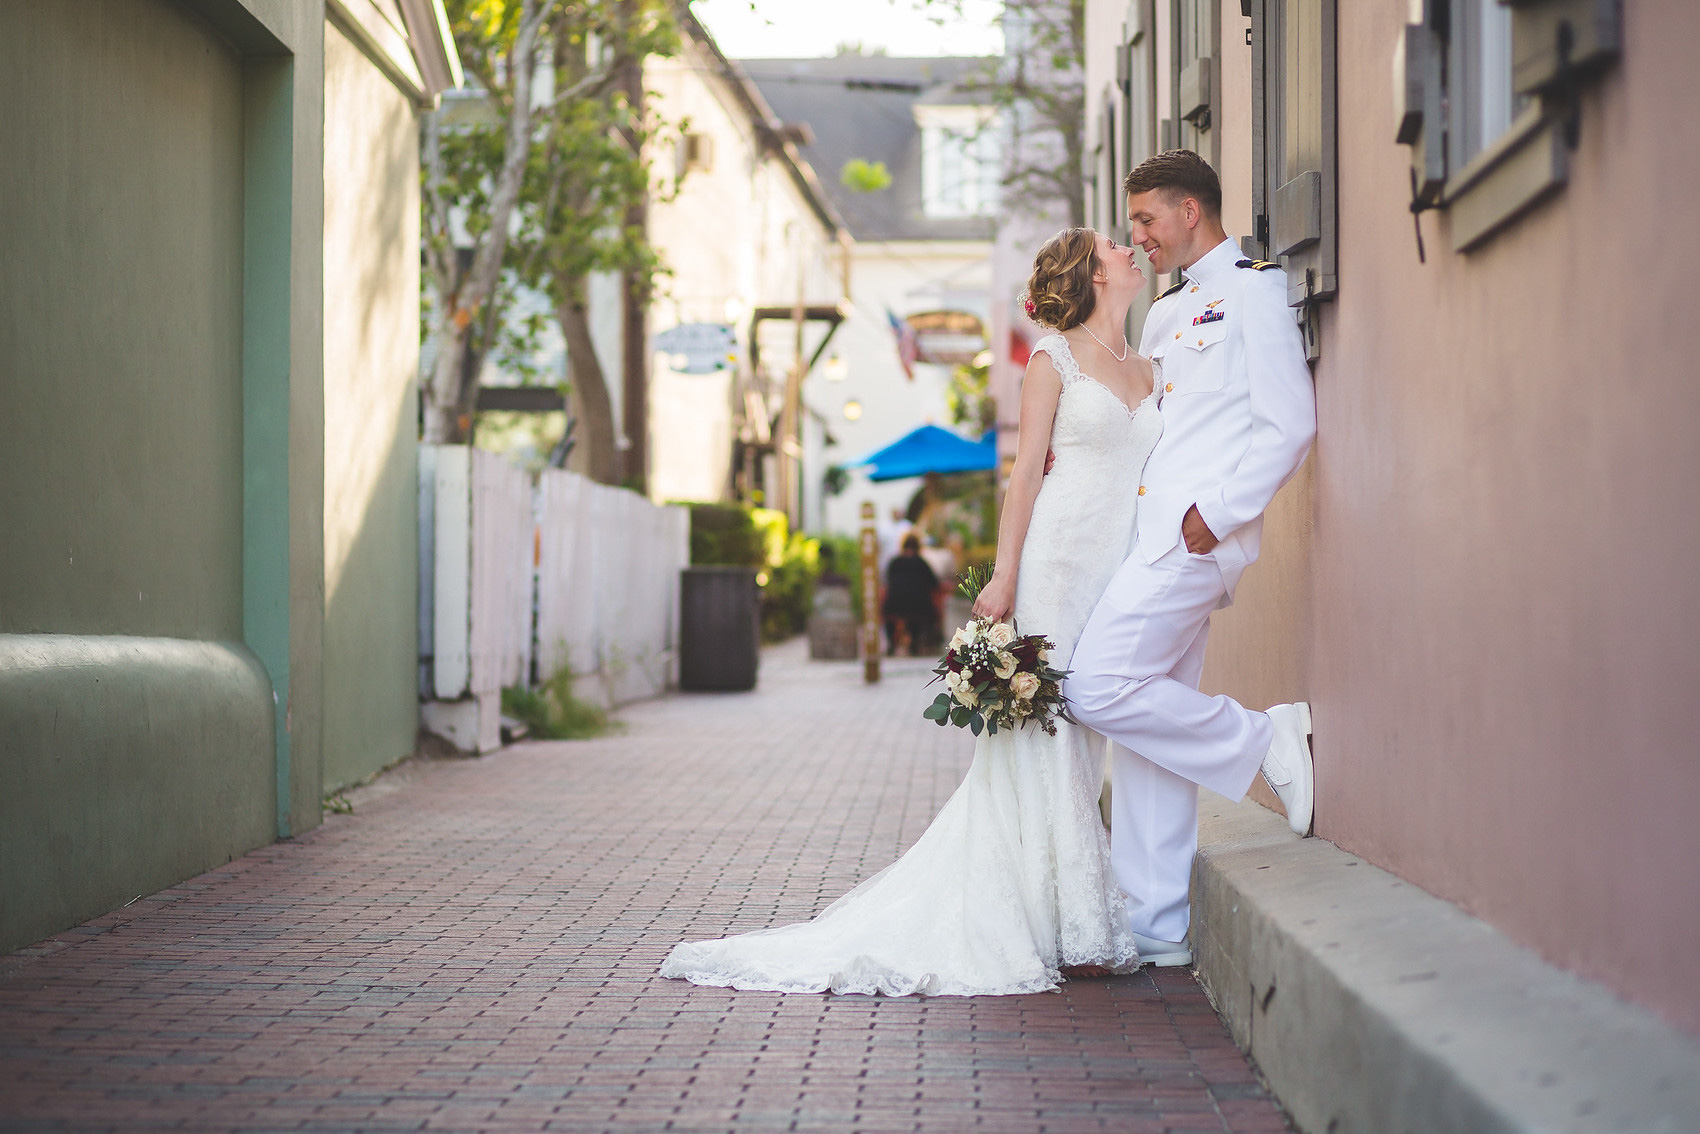 Adam-Szrmack-Bowing-the-white-room-st-augustine-wedding-photographer-82.jpg